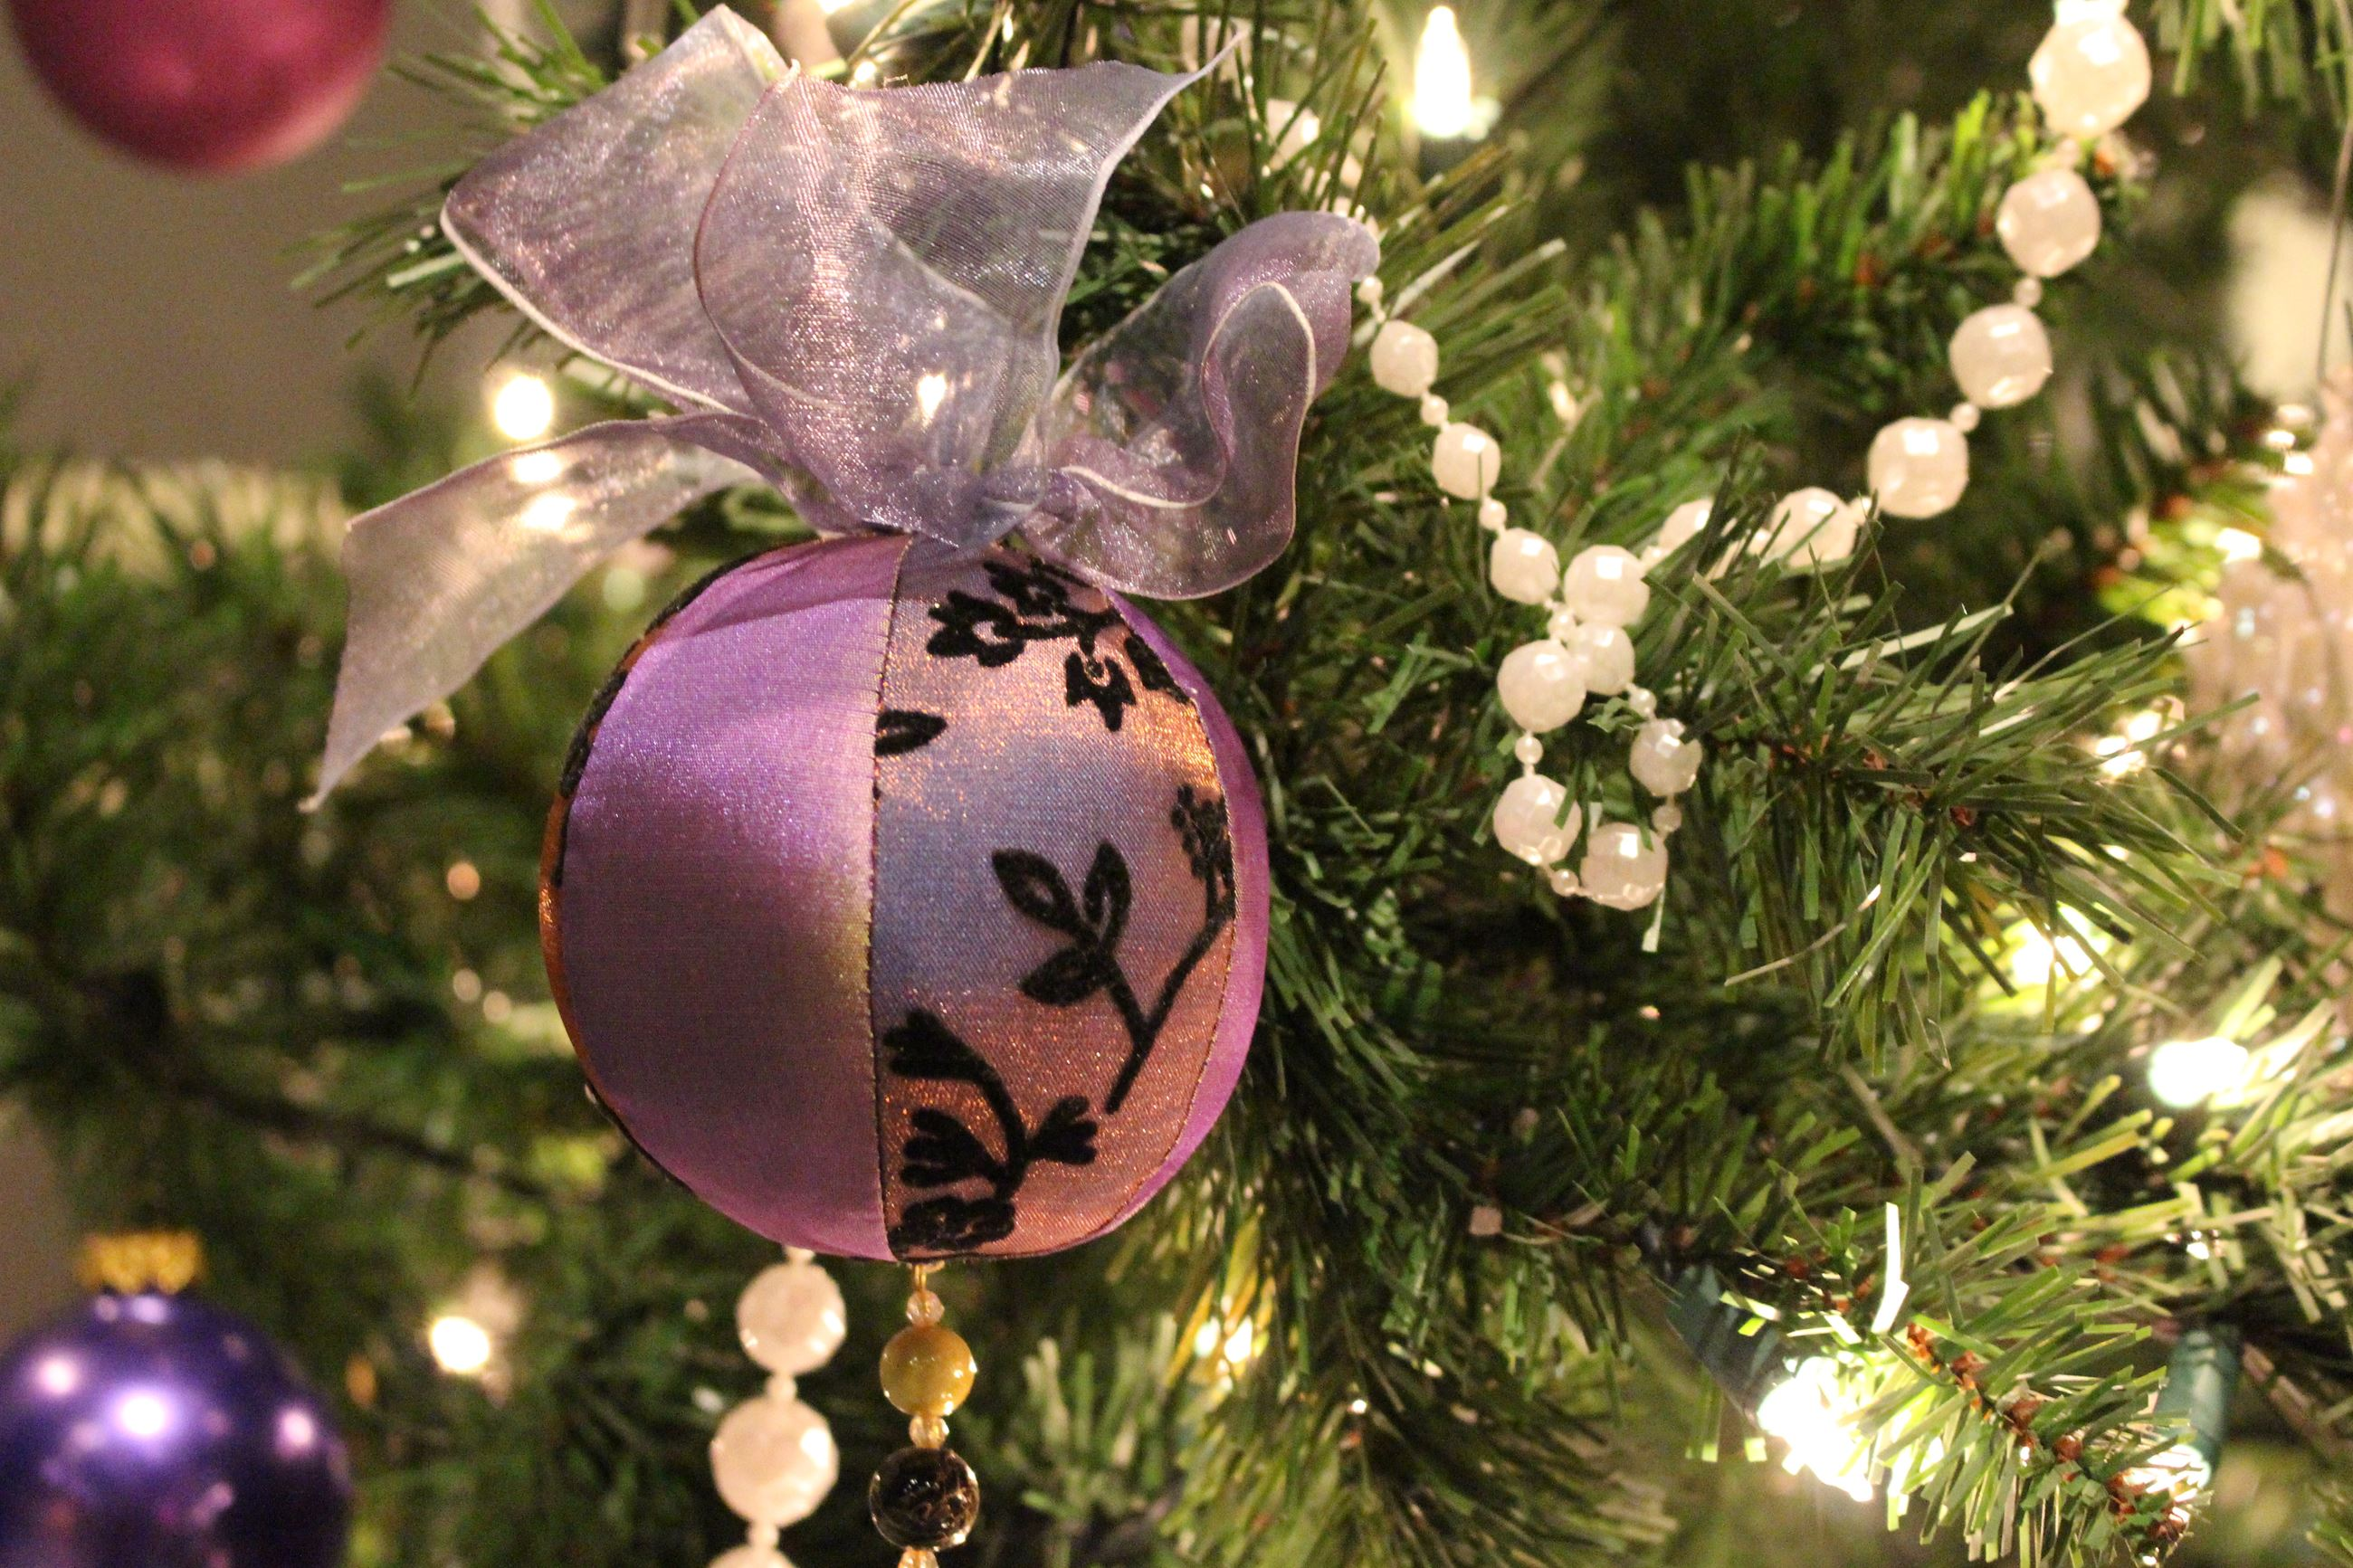 Round purple ornament hanging on a Christmas tree with white beads